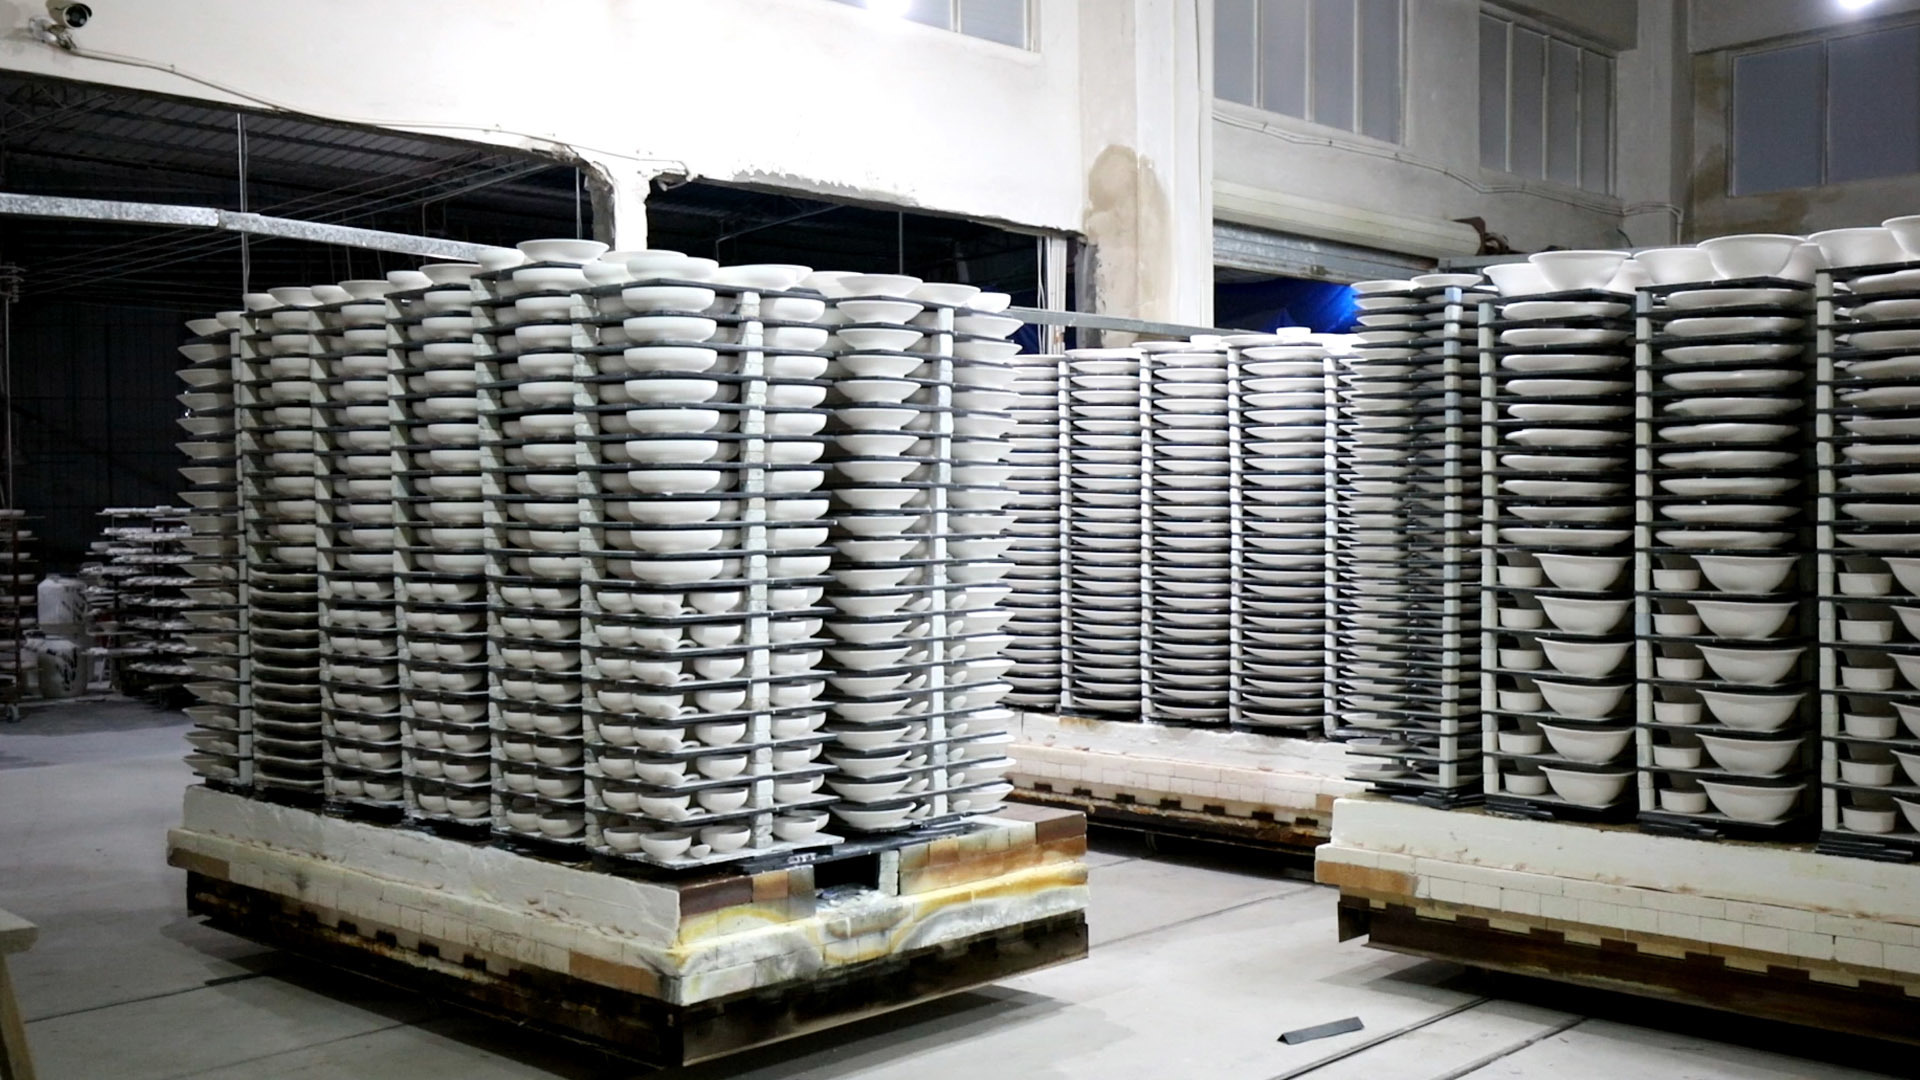 Mass production of porcelain tableware